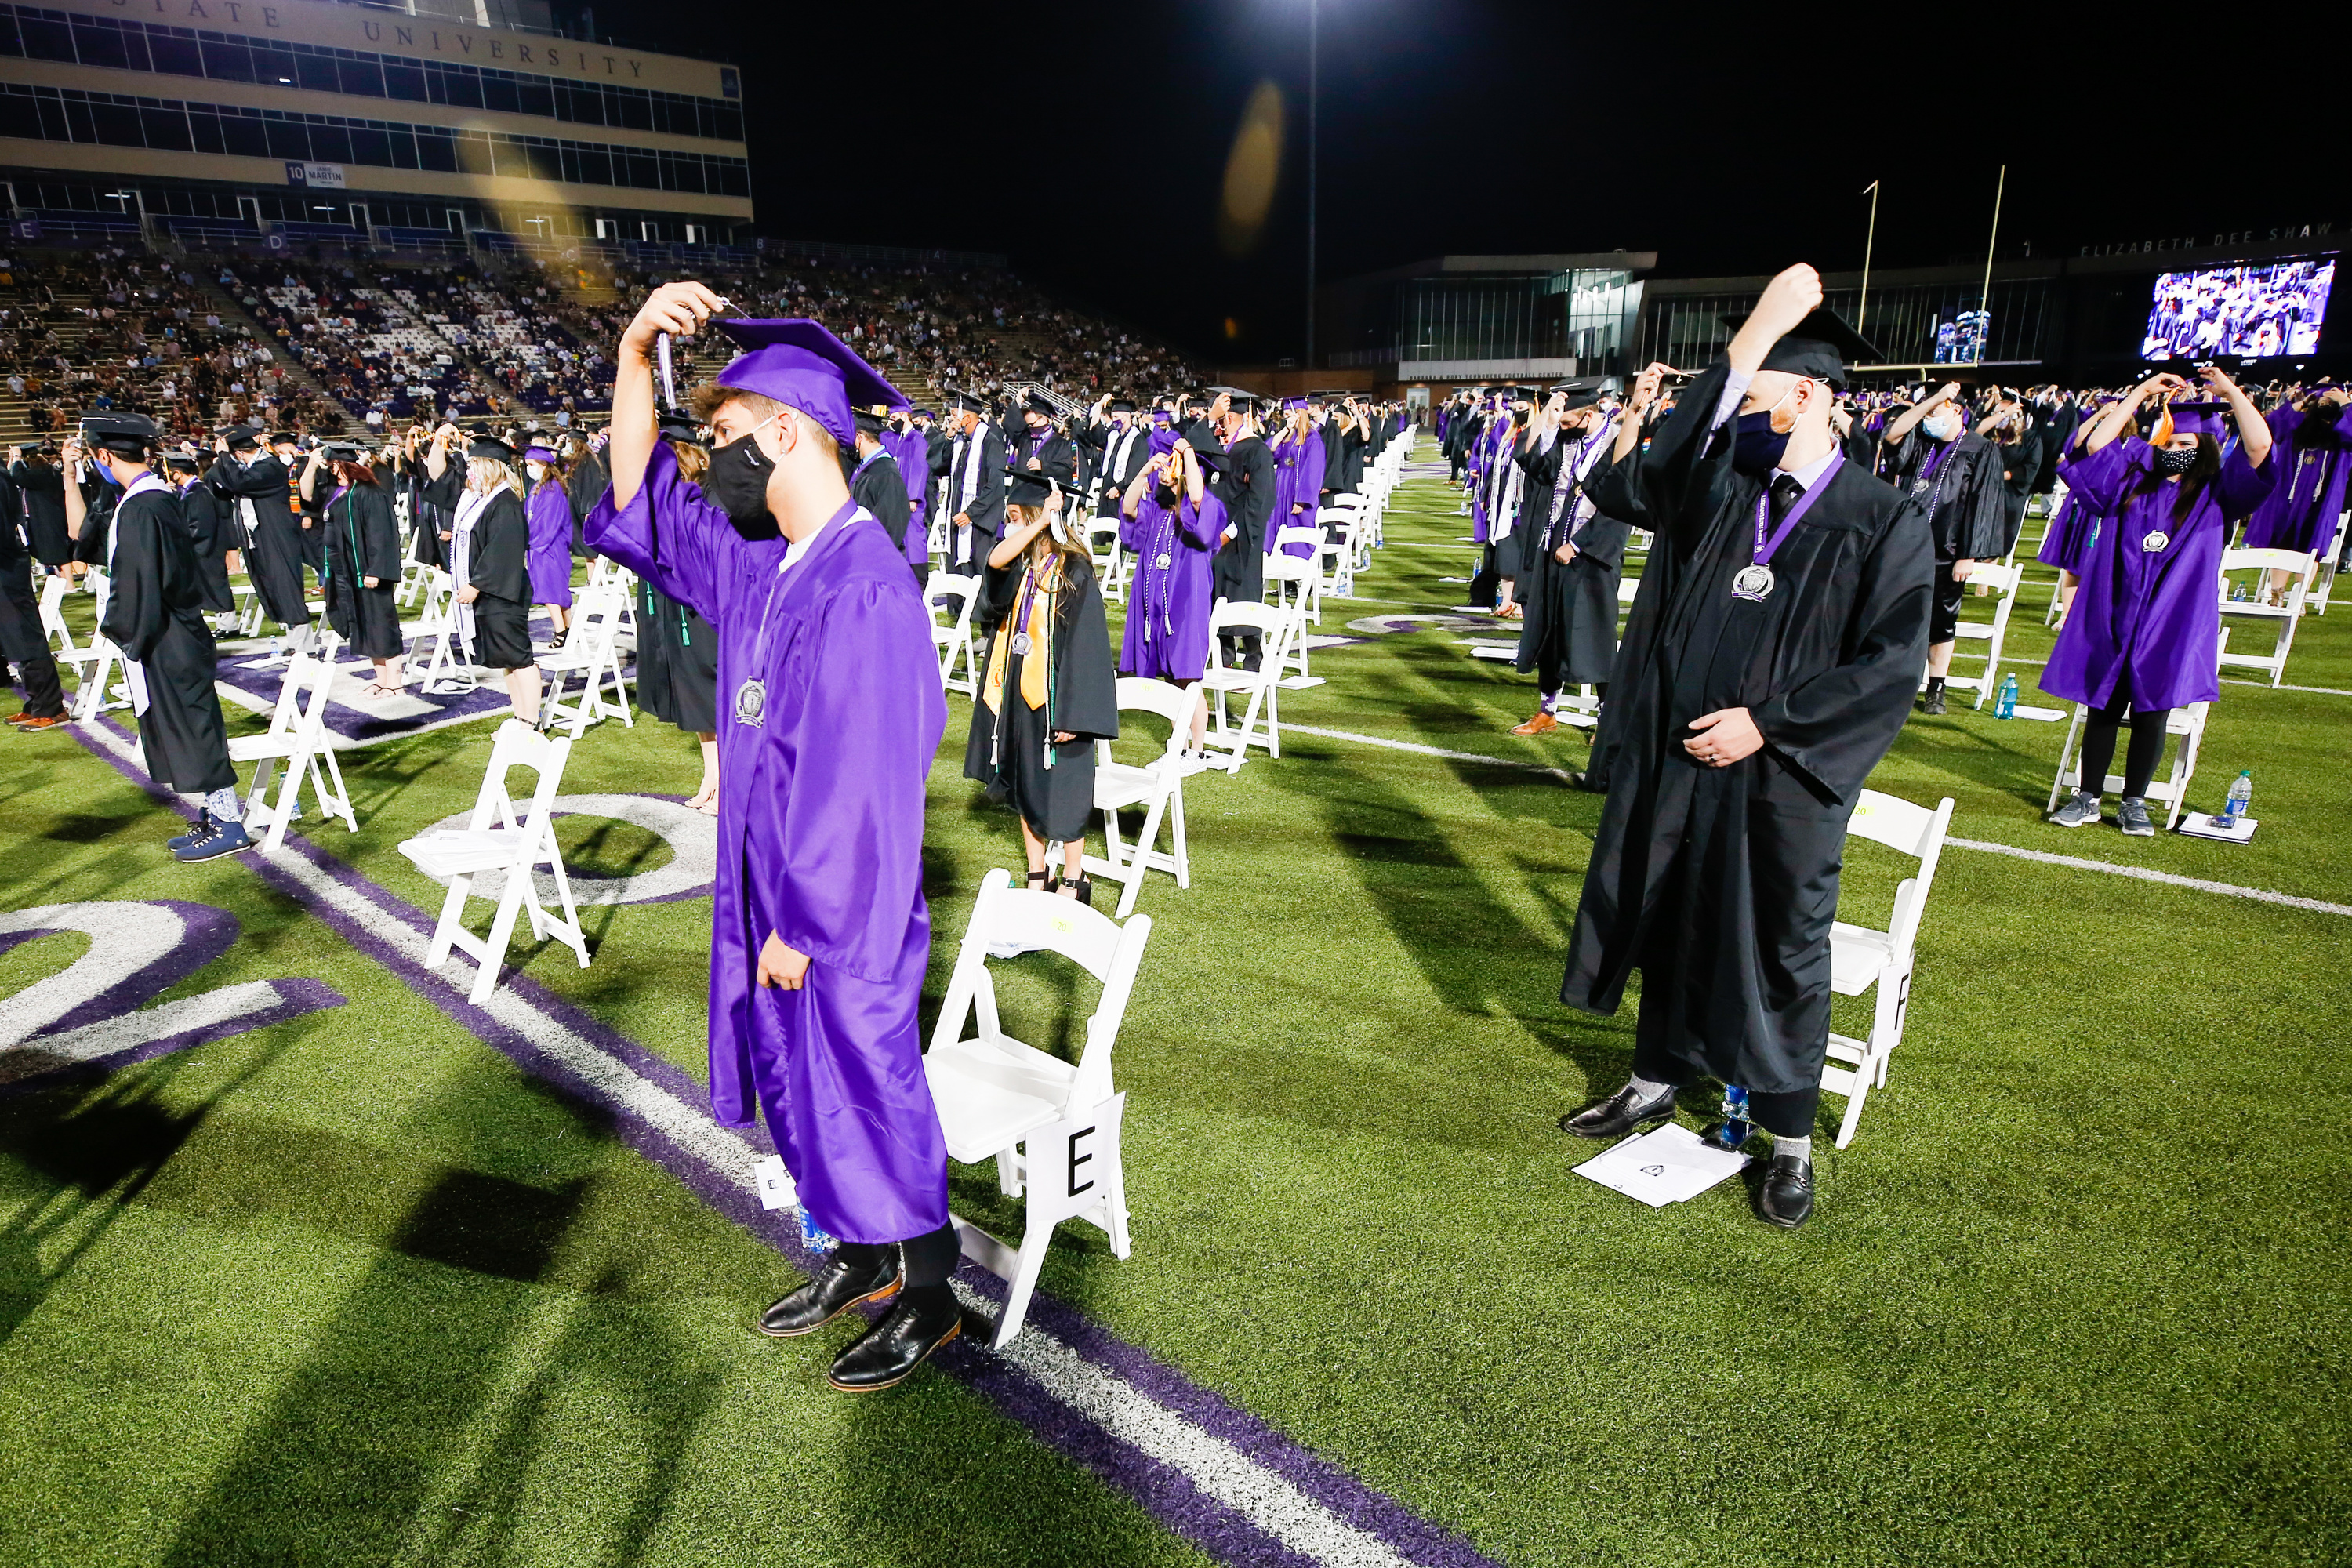 Students turn their tussles from right to left during the spring and summer graduation ceremonies at Stewart Stadium at Weber State University in Ogden on Saturday, Aug. 29, 2020.